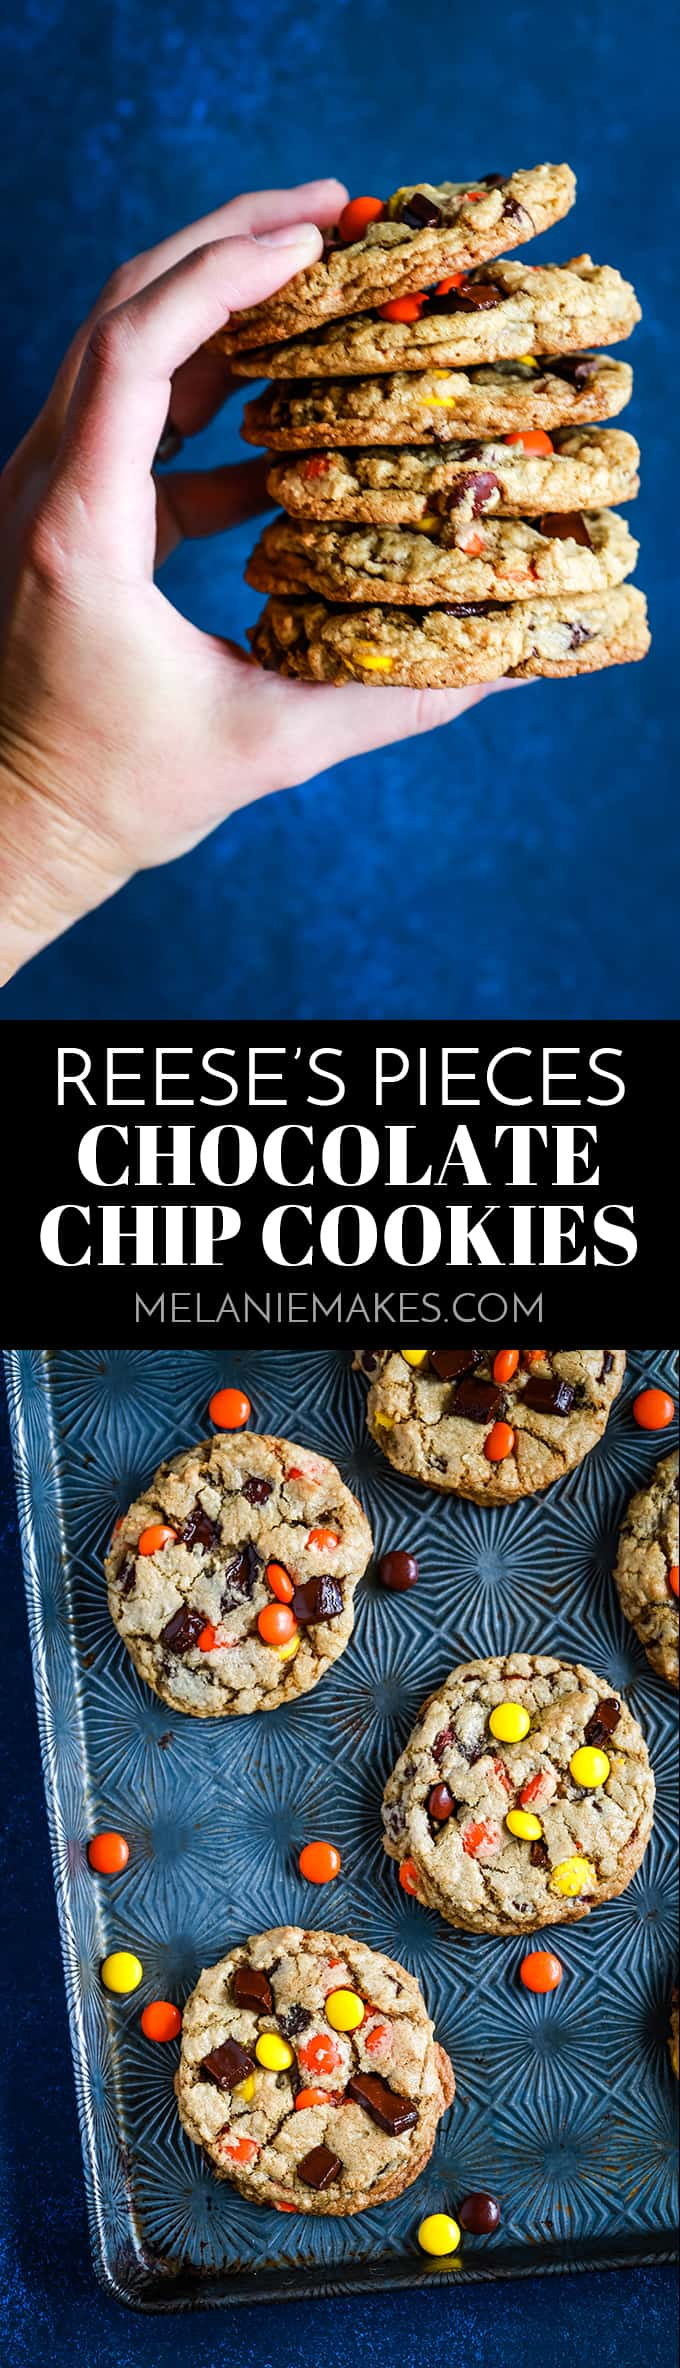 These soft and chewy Reese's Pieces Chocolate Chip Cookies are a peanut butter and chocolate lover's dream. A traditional chocolate chip cookie base is overloaded with chocolate and candy to create a cookie you won't soon forget. #chocolatechip #cookies #peanutbutter #candy #reesespieces